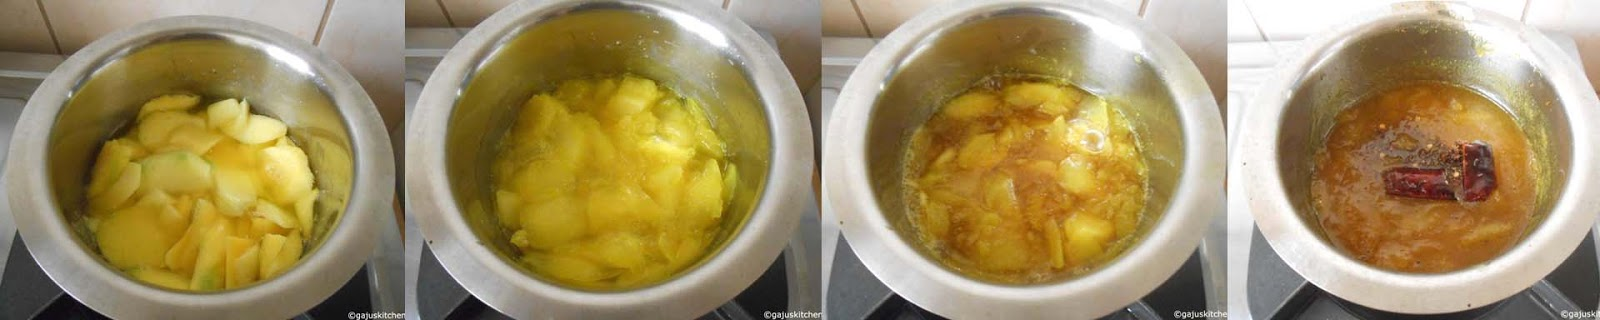 cooking mango slices and preparing pachadi